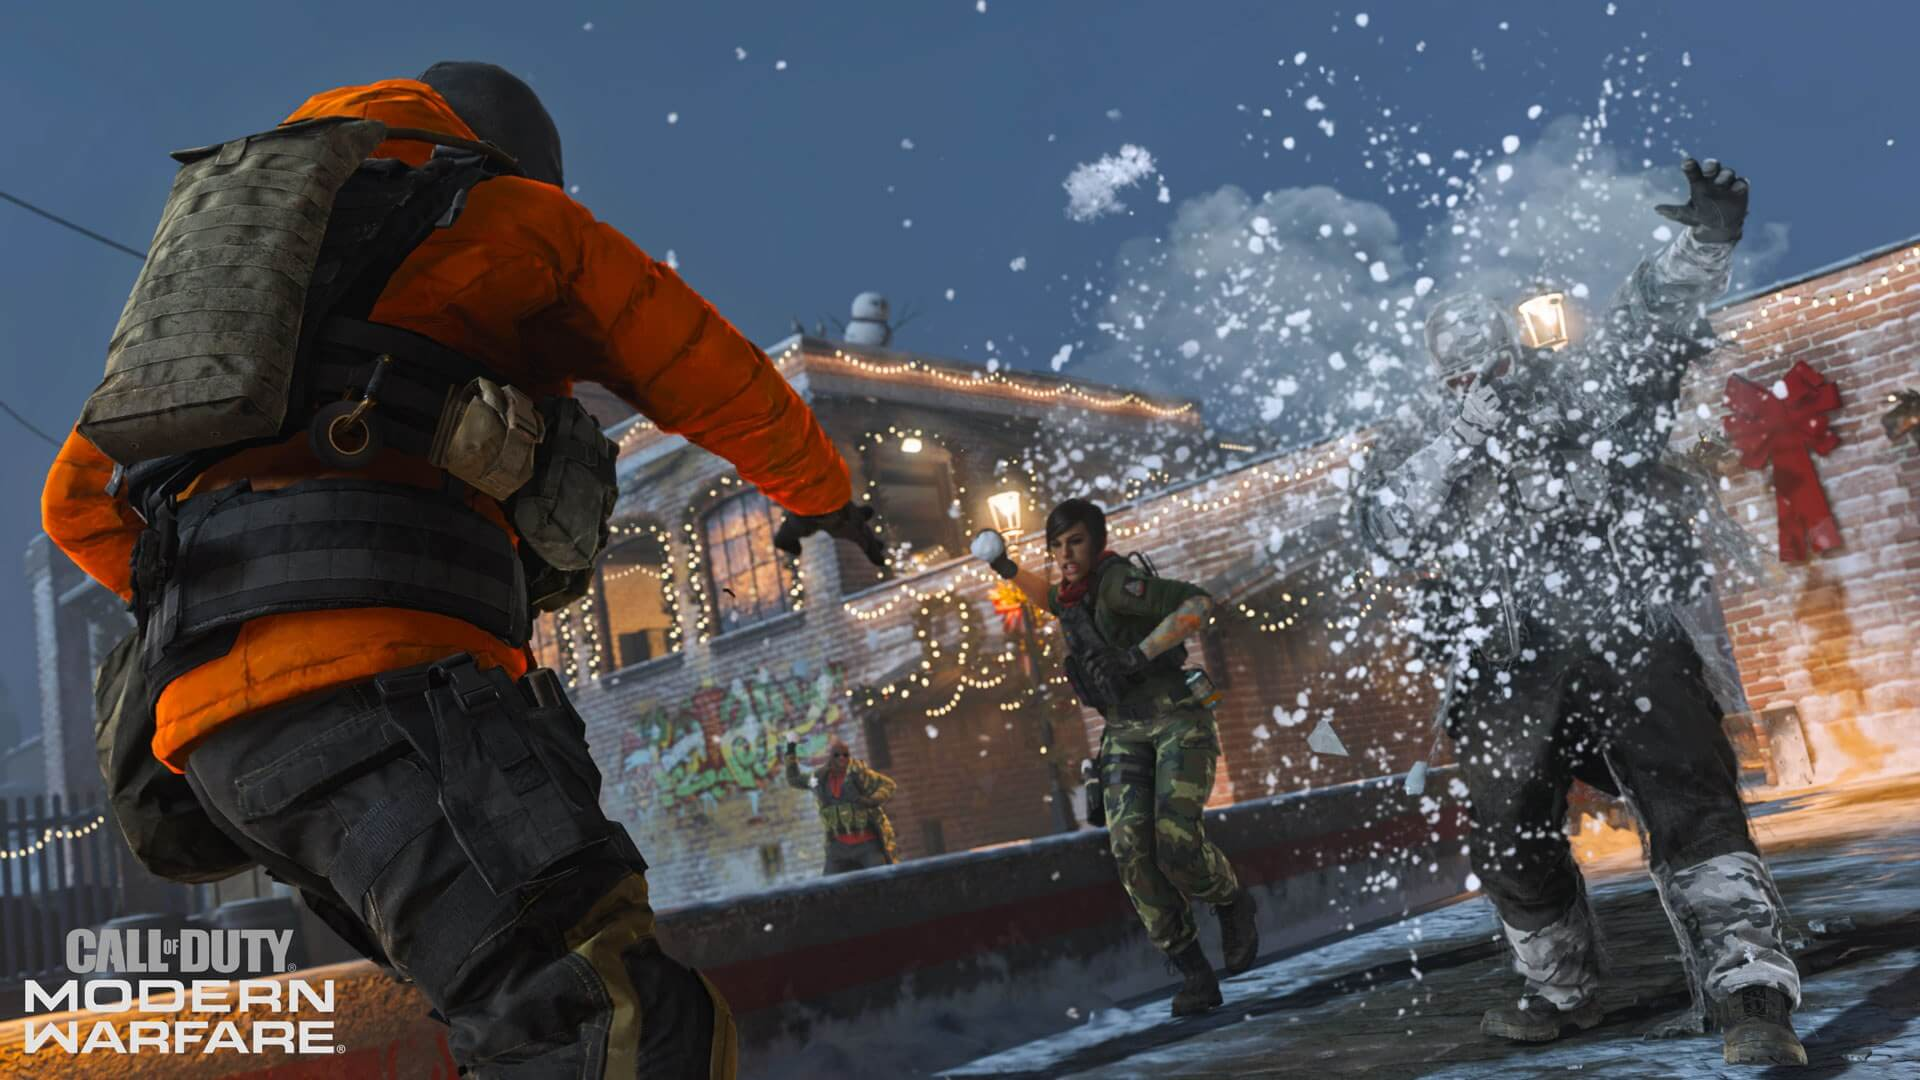 Activision adds a new snowball fight match to CoD: MW for the holidays